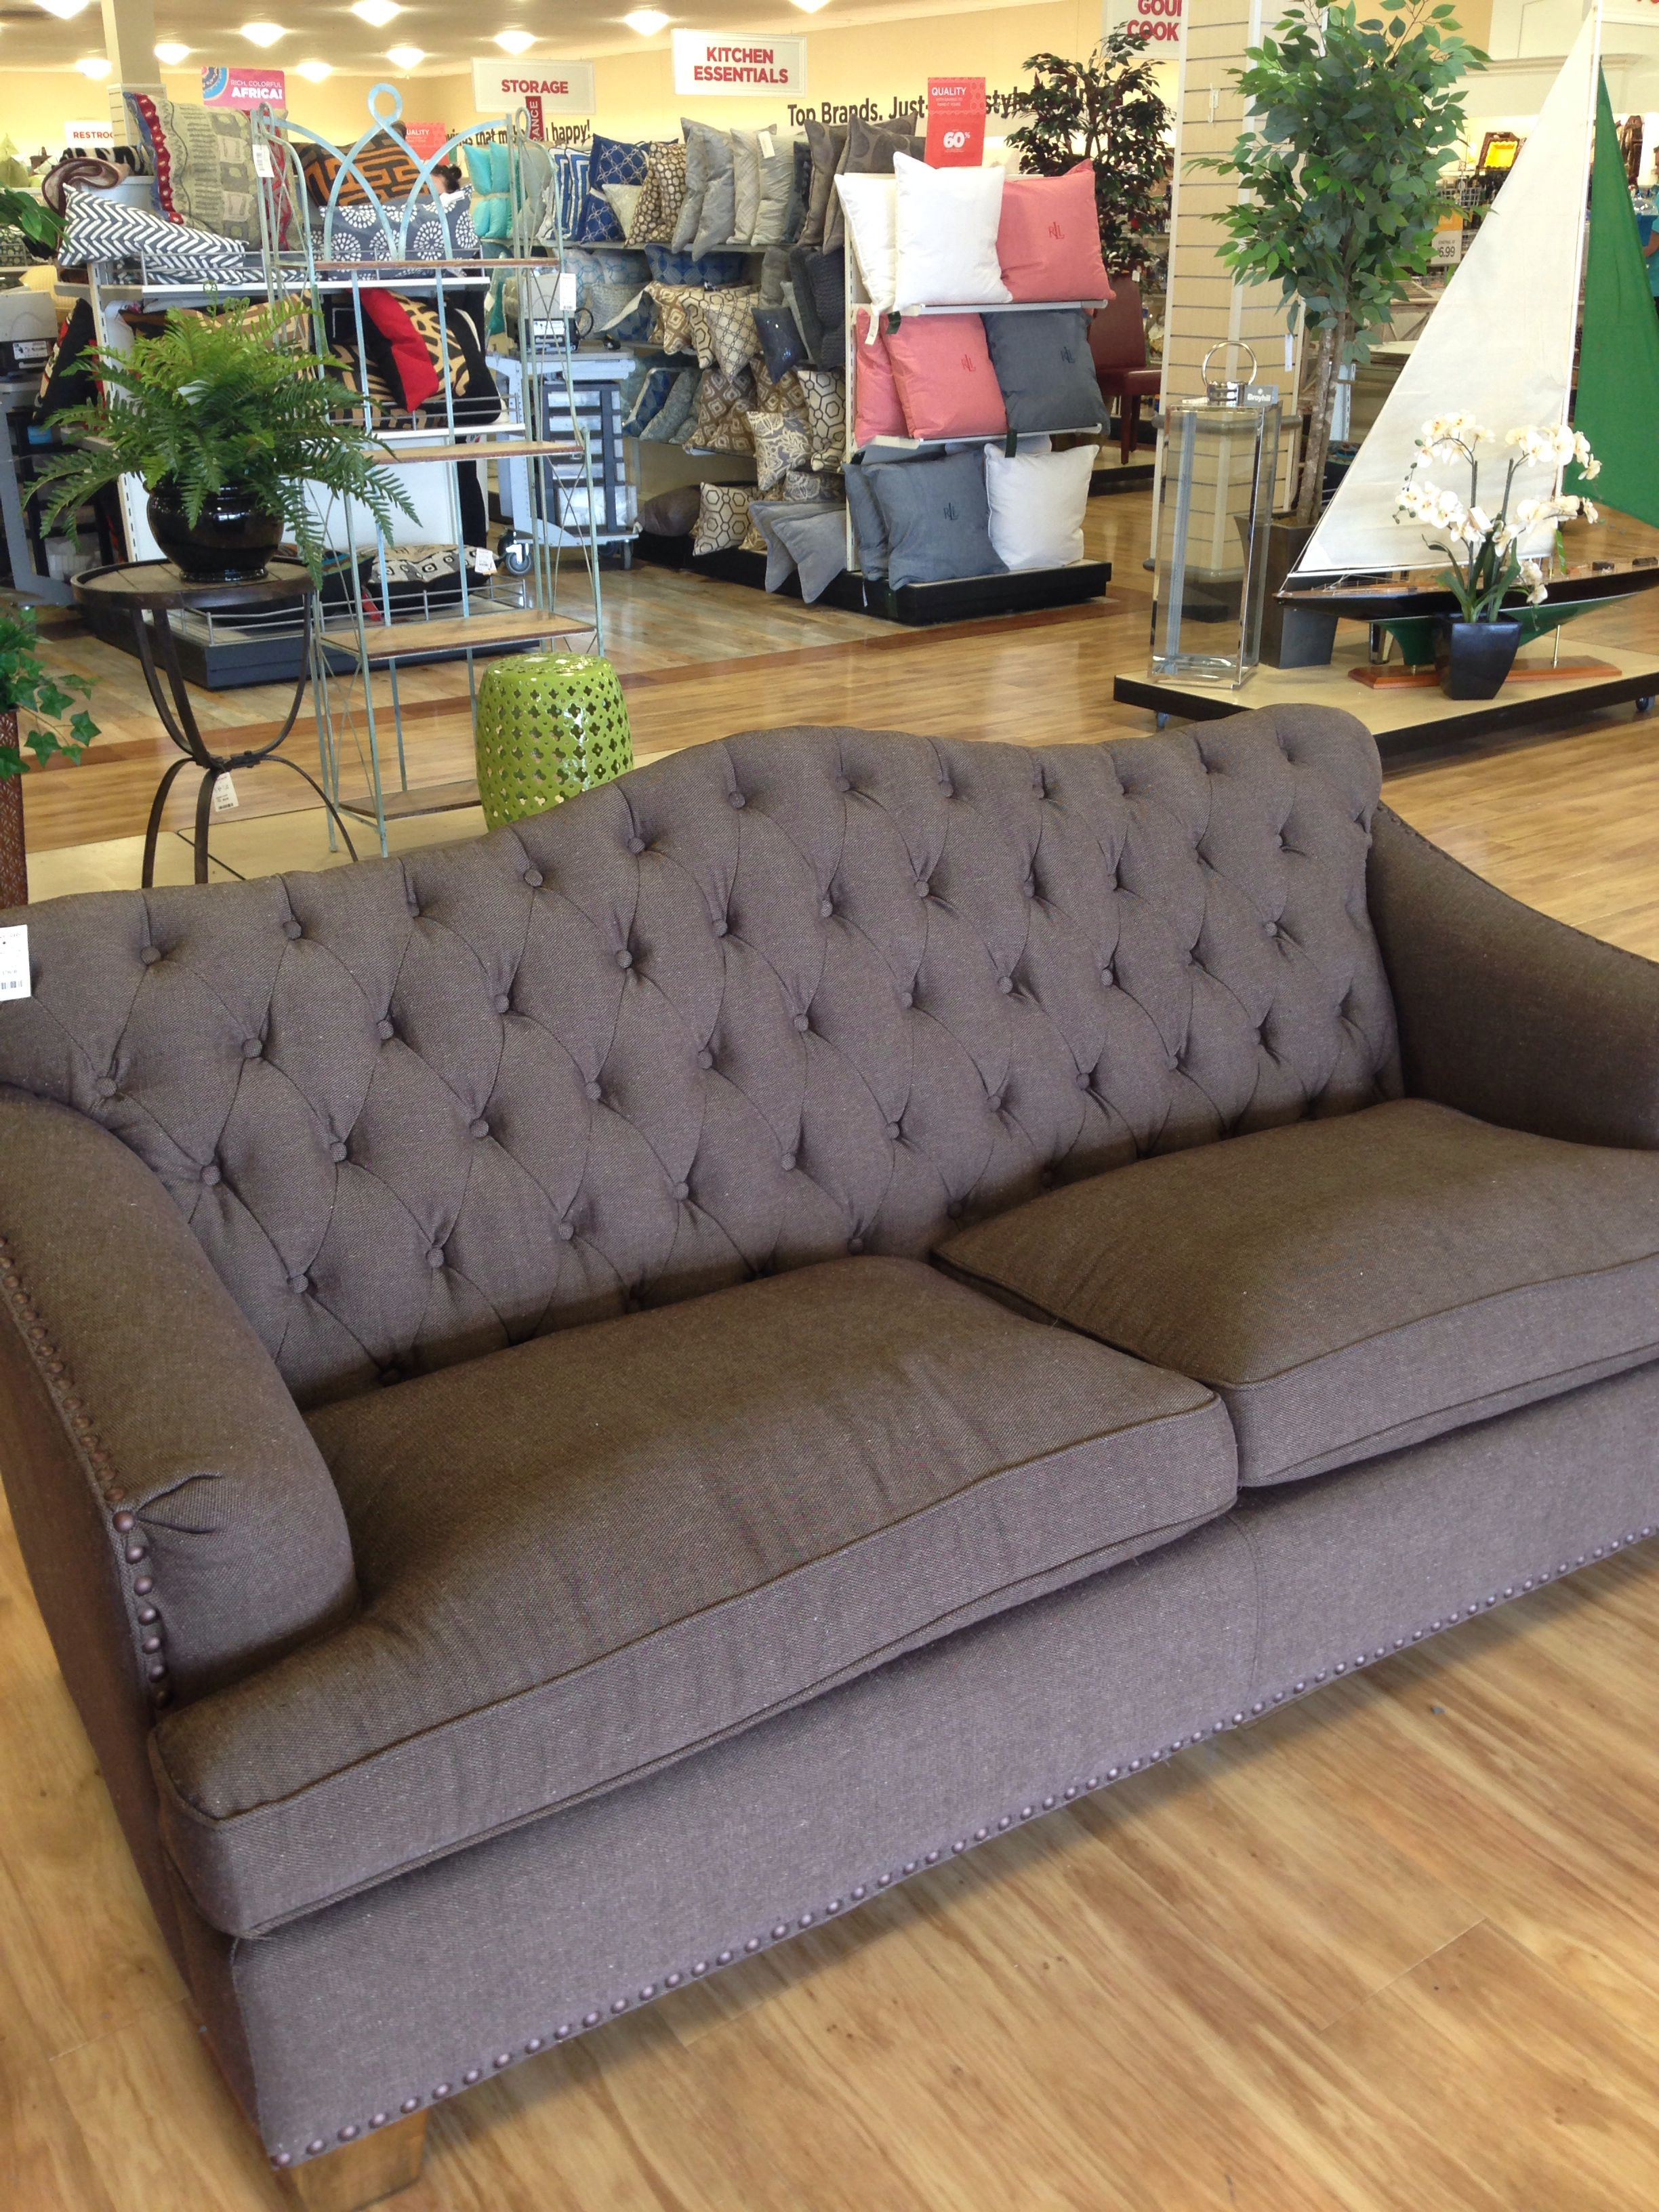 Tufted Sofa Home Goods Decorating Tips